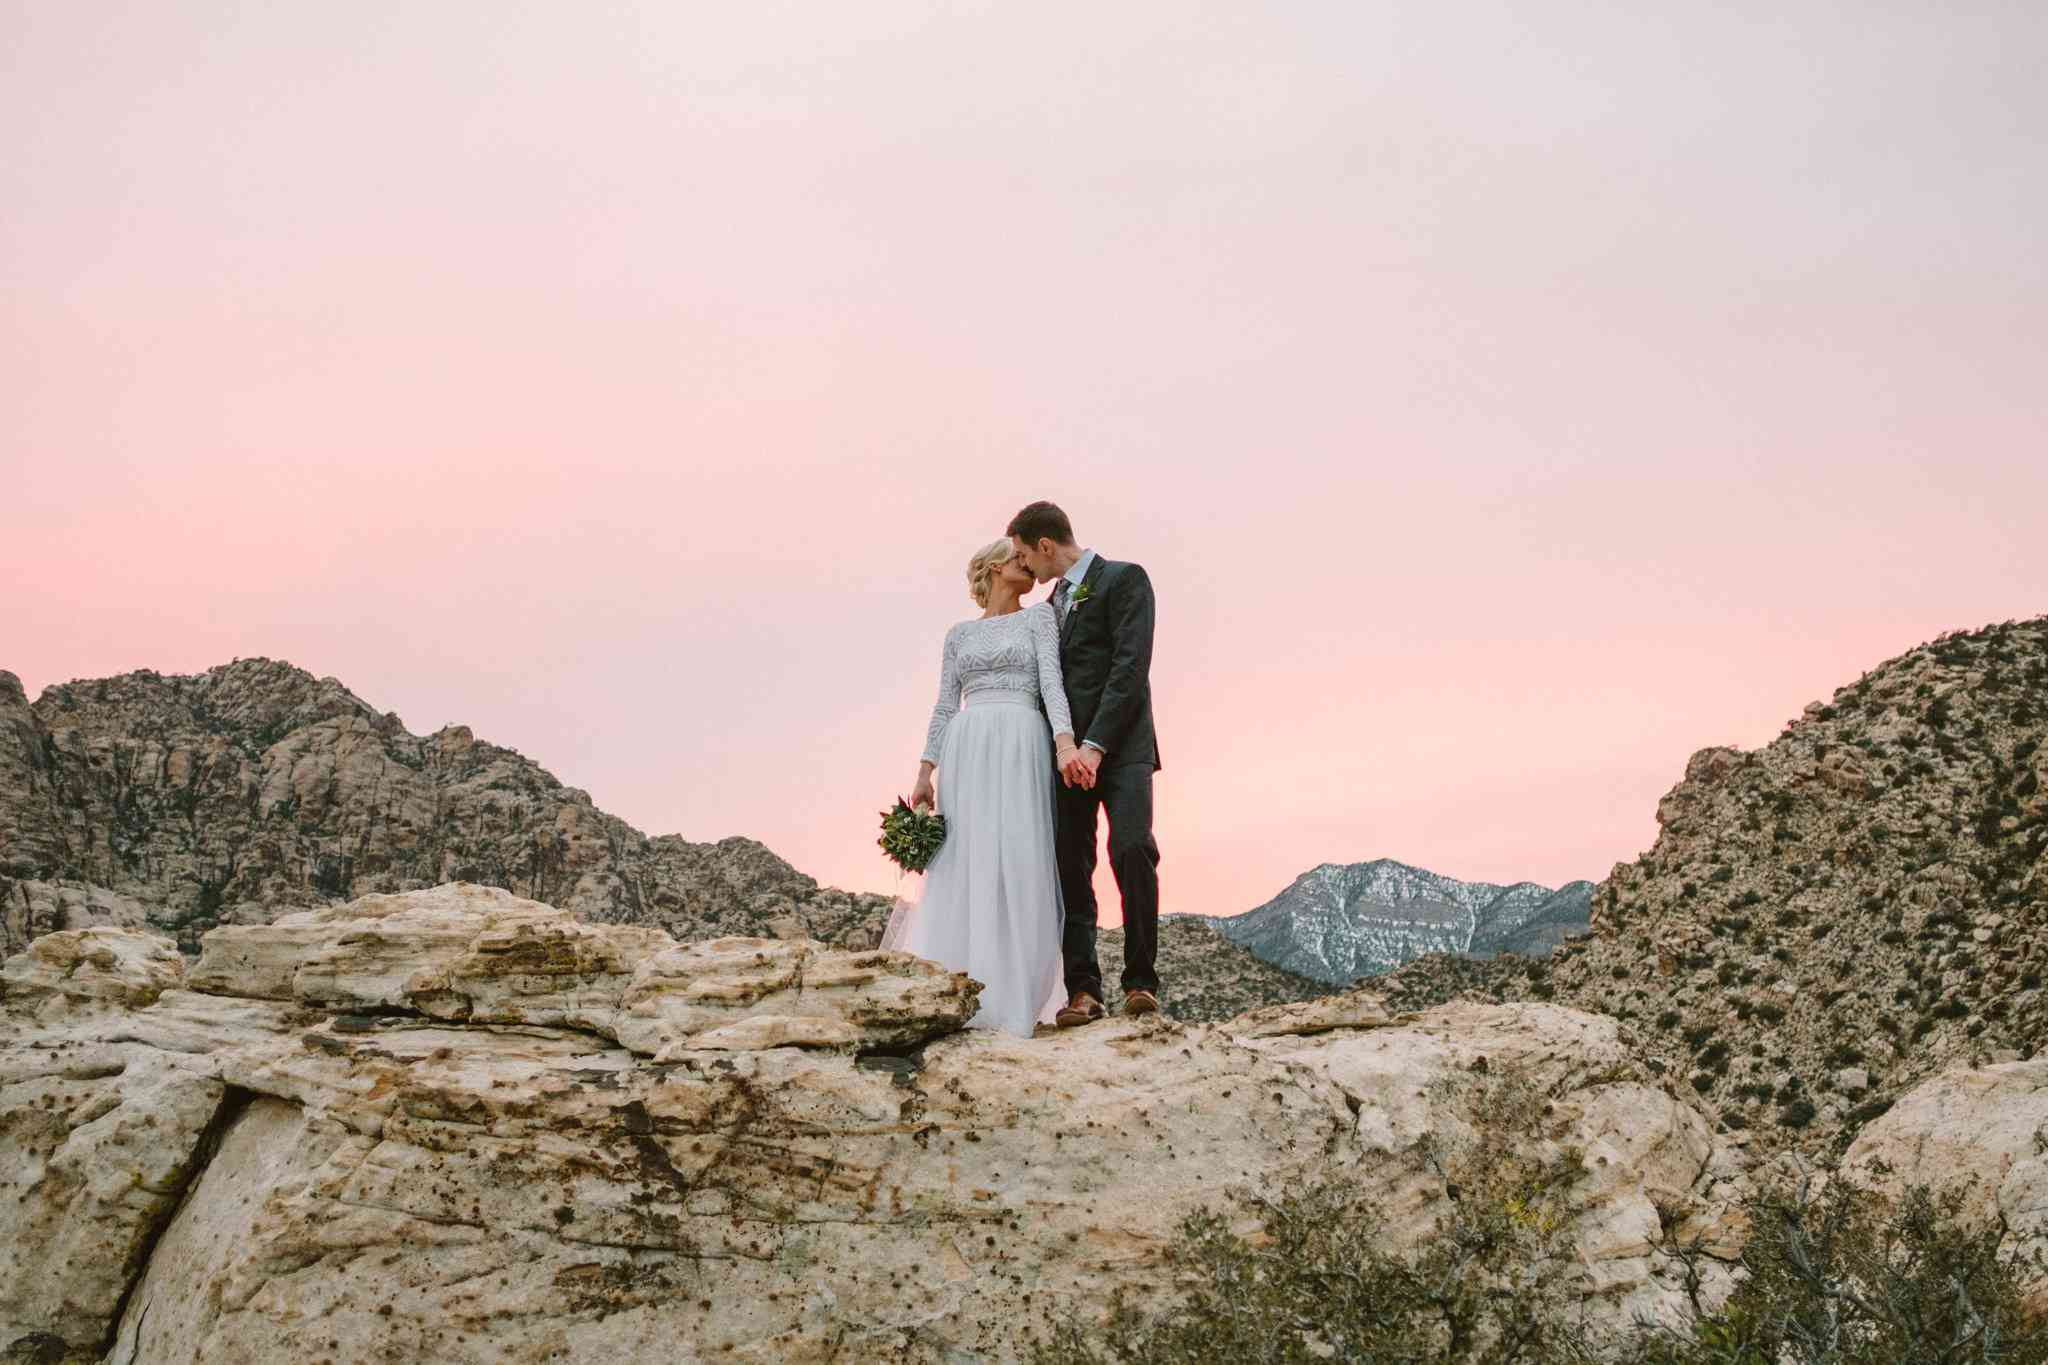 <p>Wedding photo at Red Rock Canyon in Nevada</p>